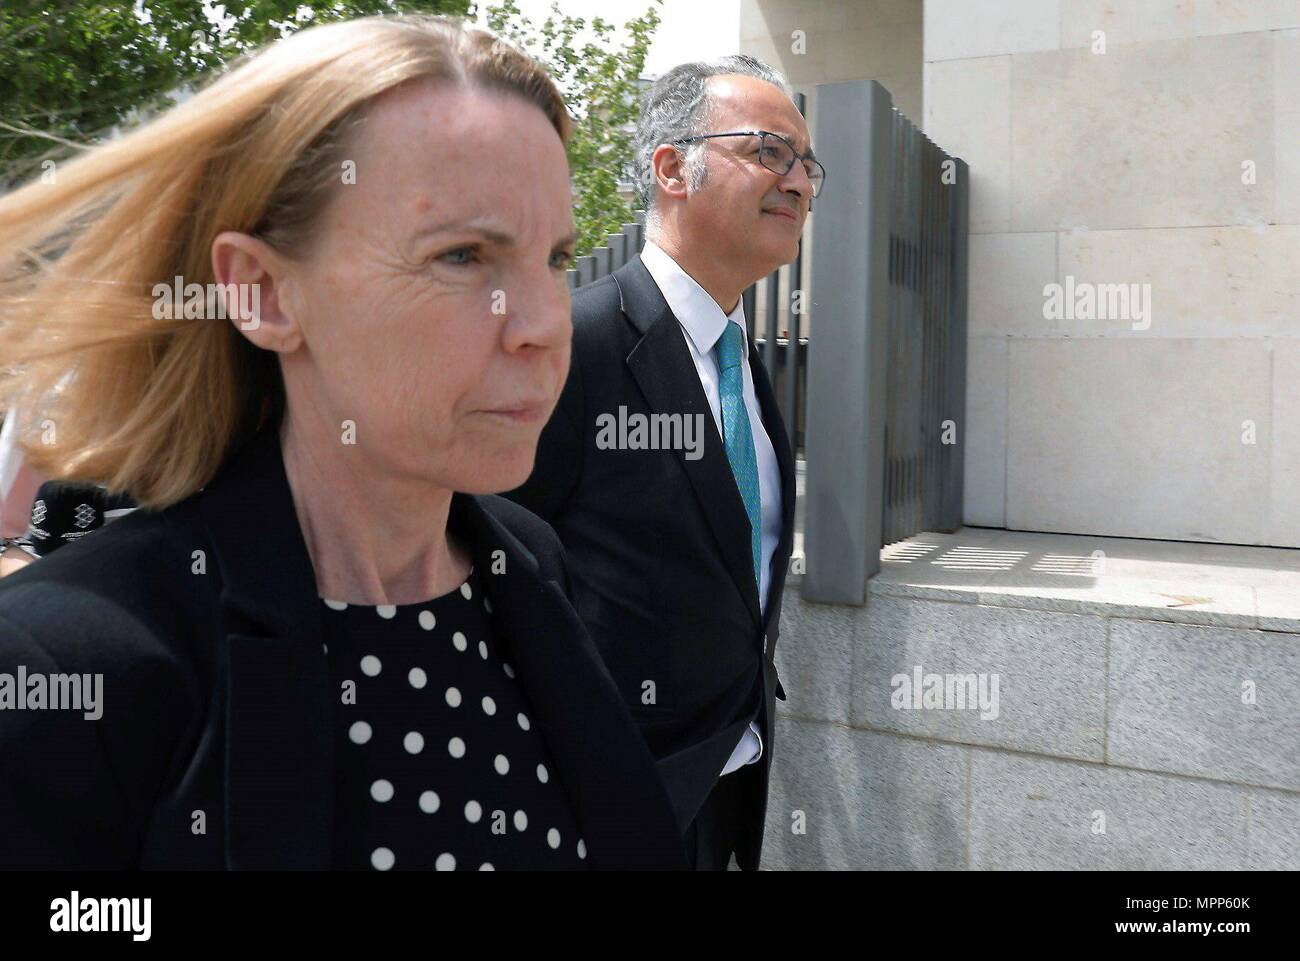 Valencia, Spain  24th May, 2018  Rosa Barcelo (R), wife of